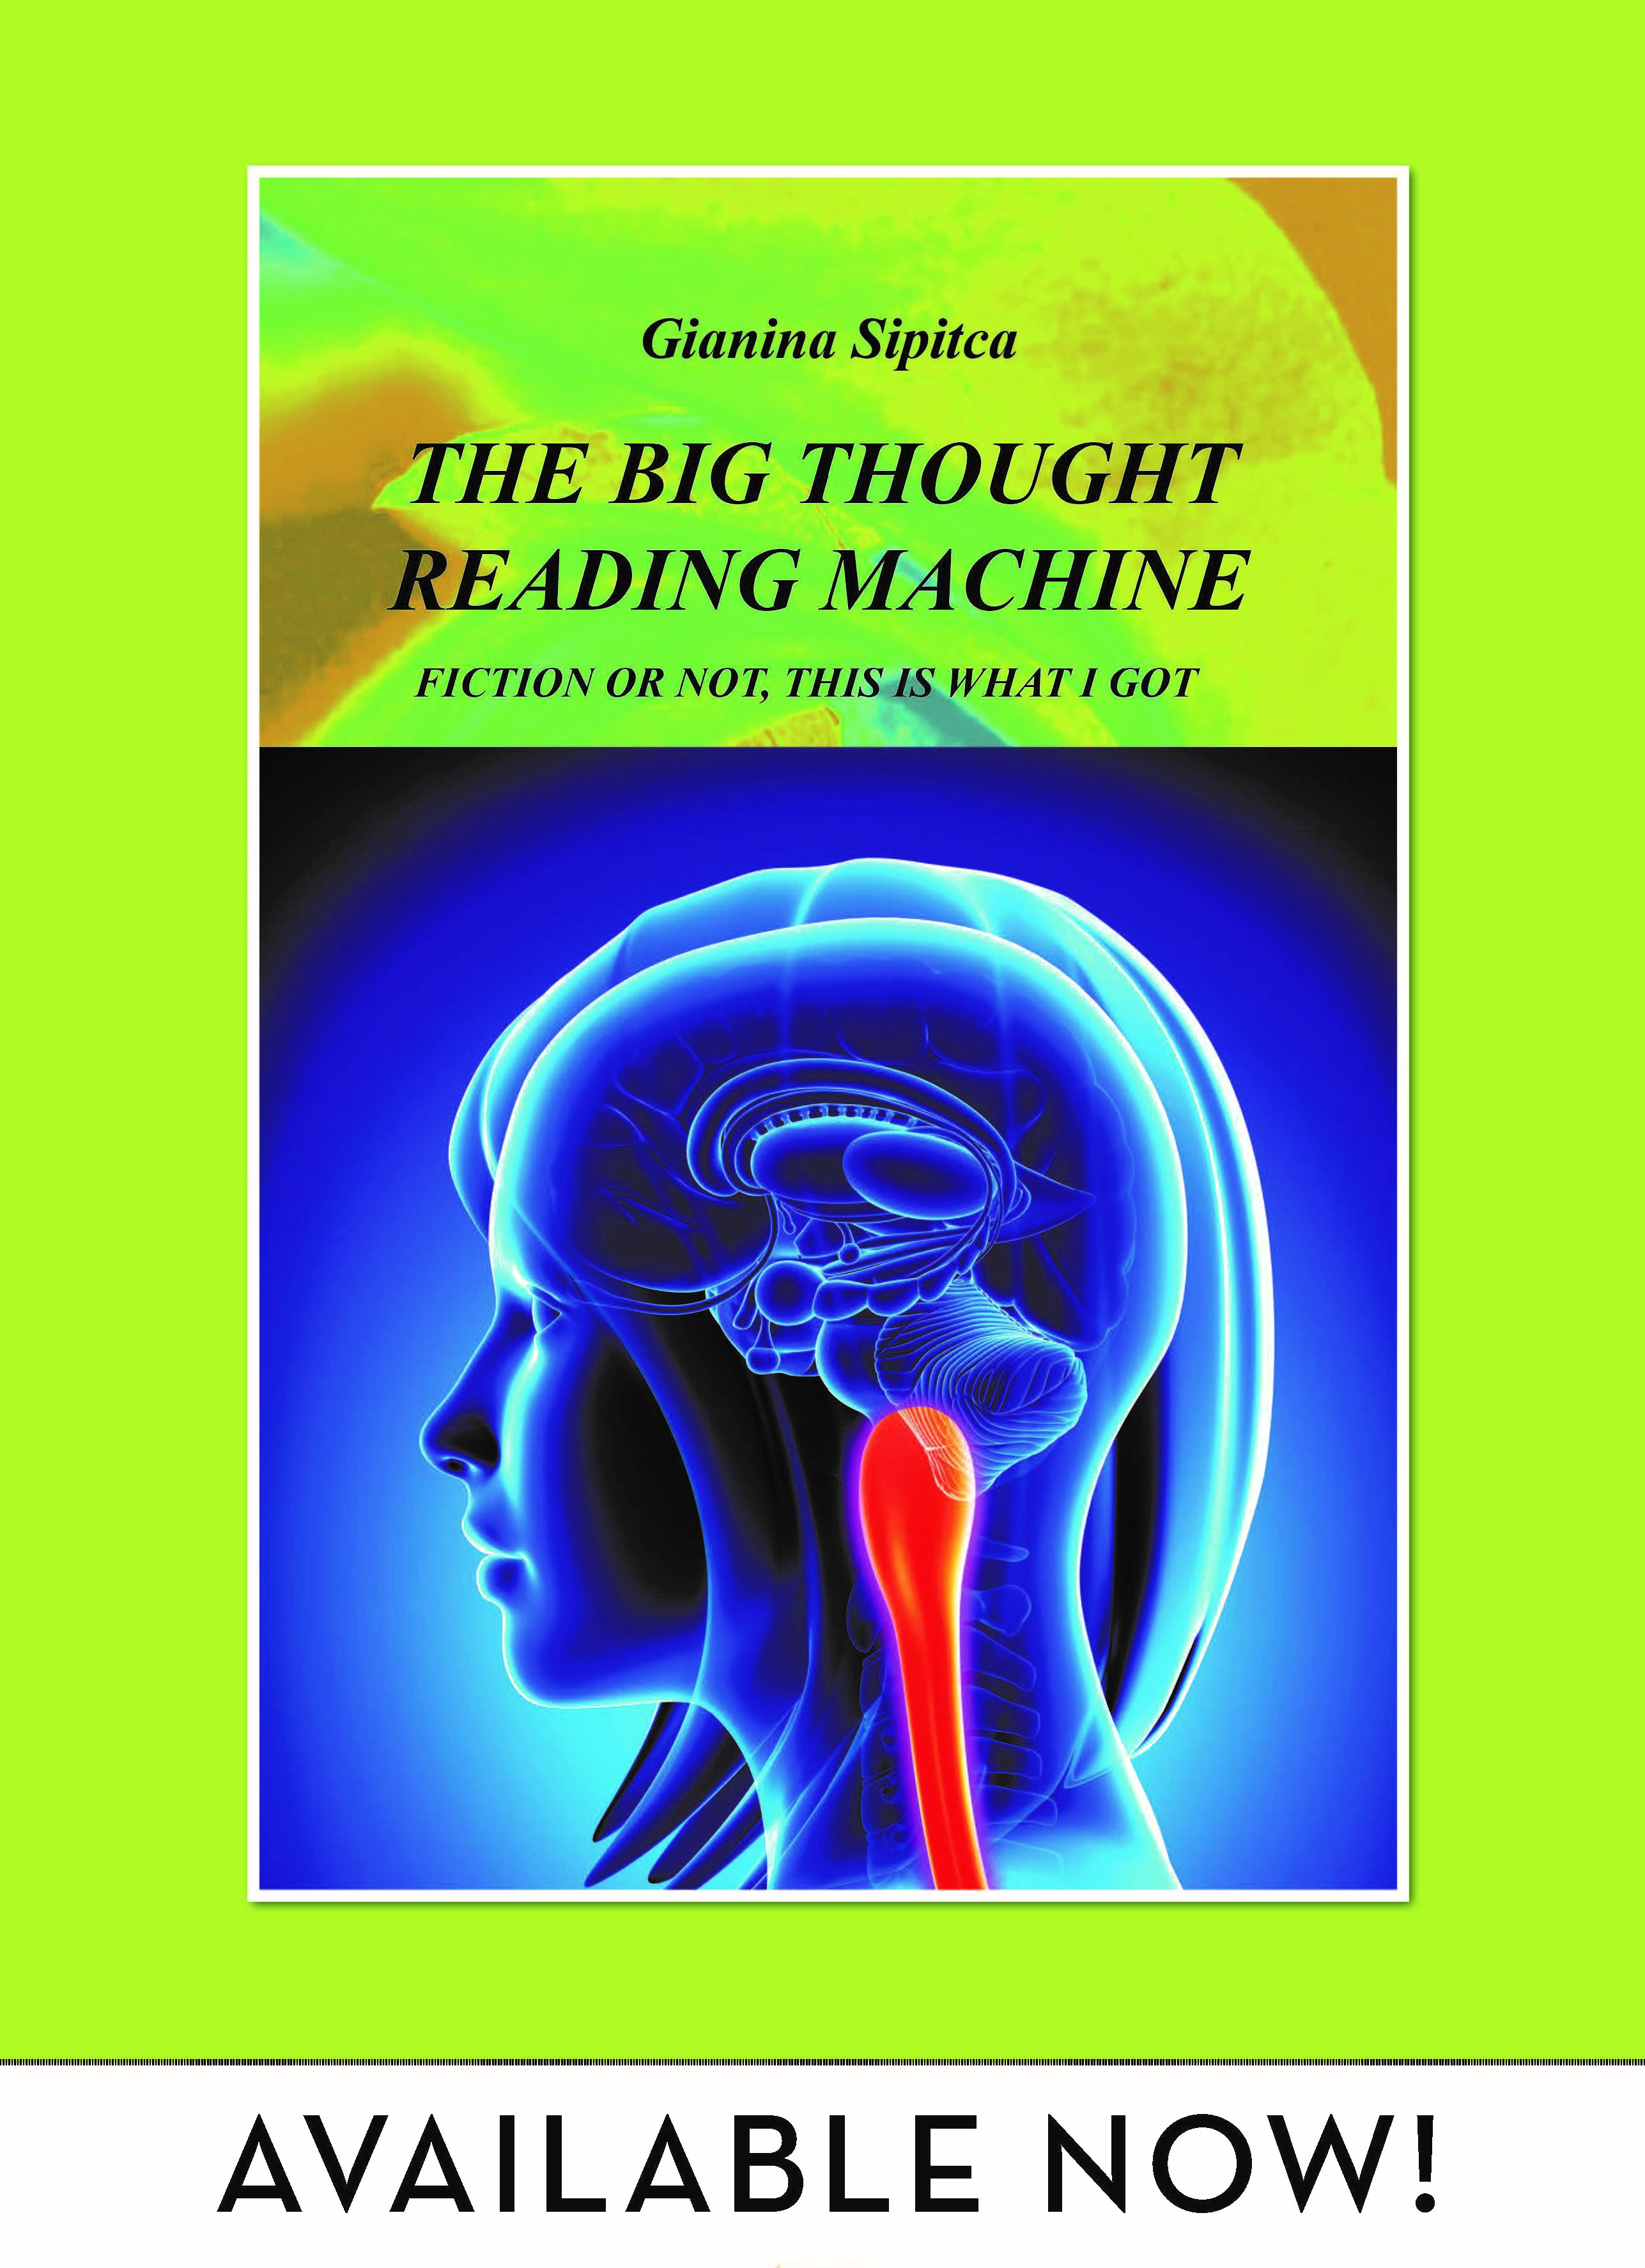 What inspired the writing of The Big Thought Reading Machine